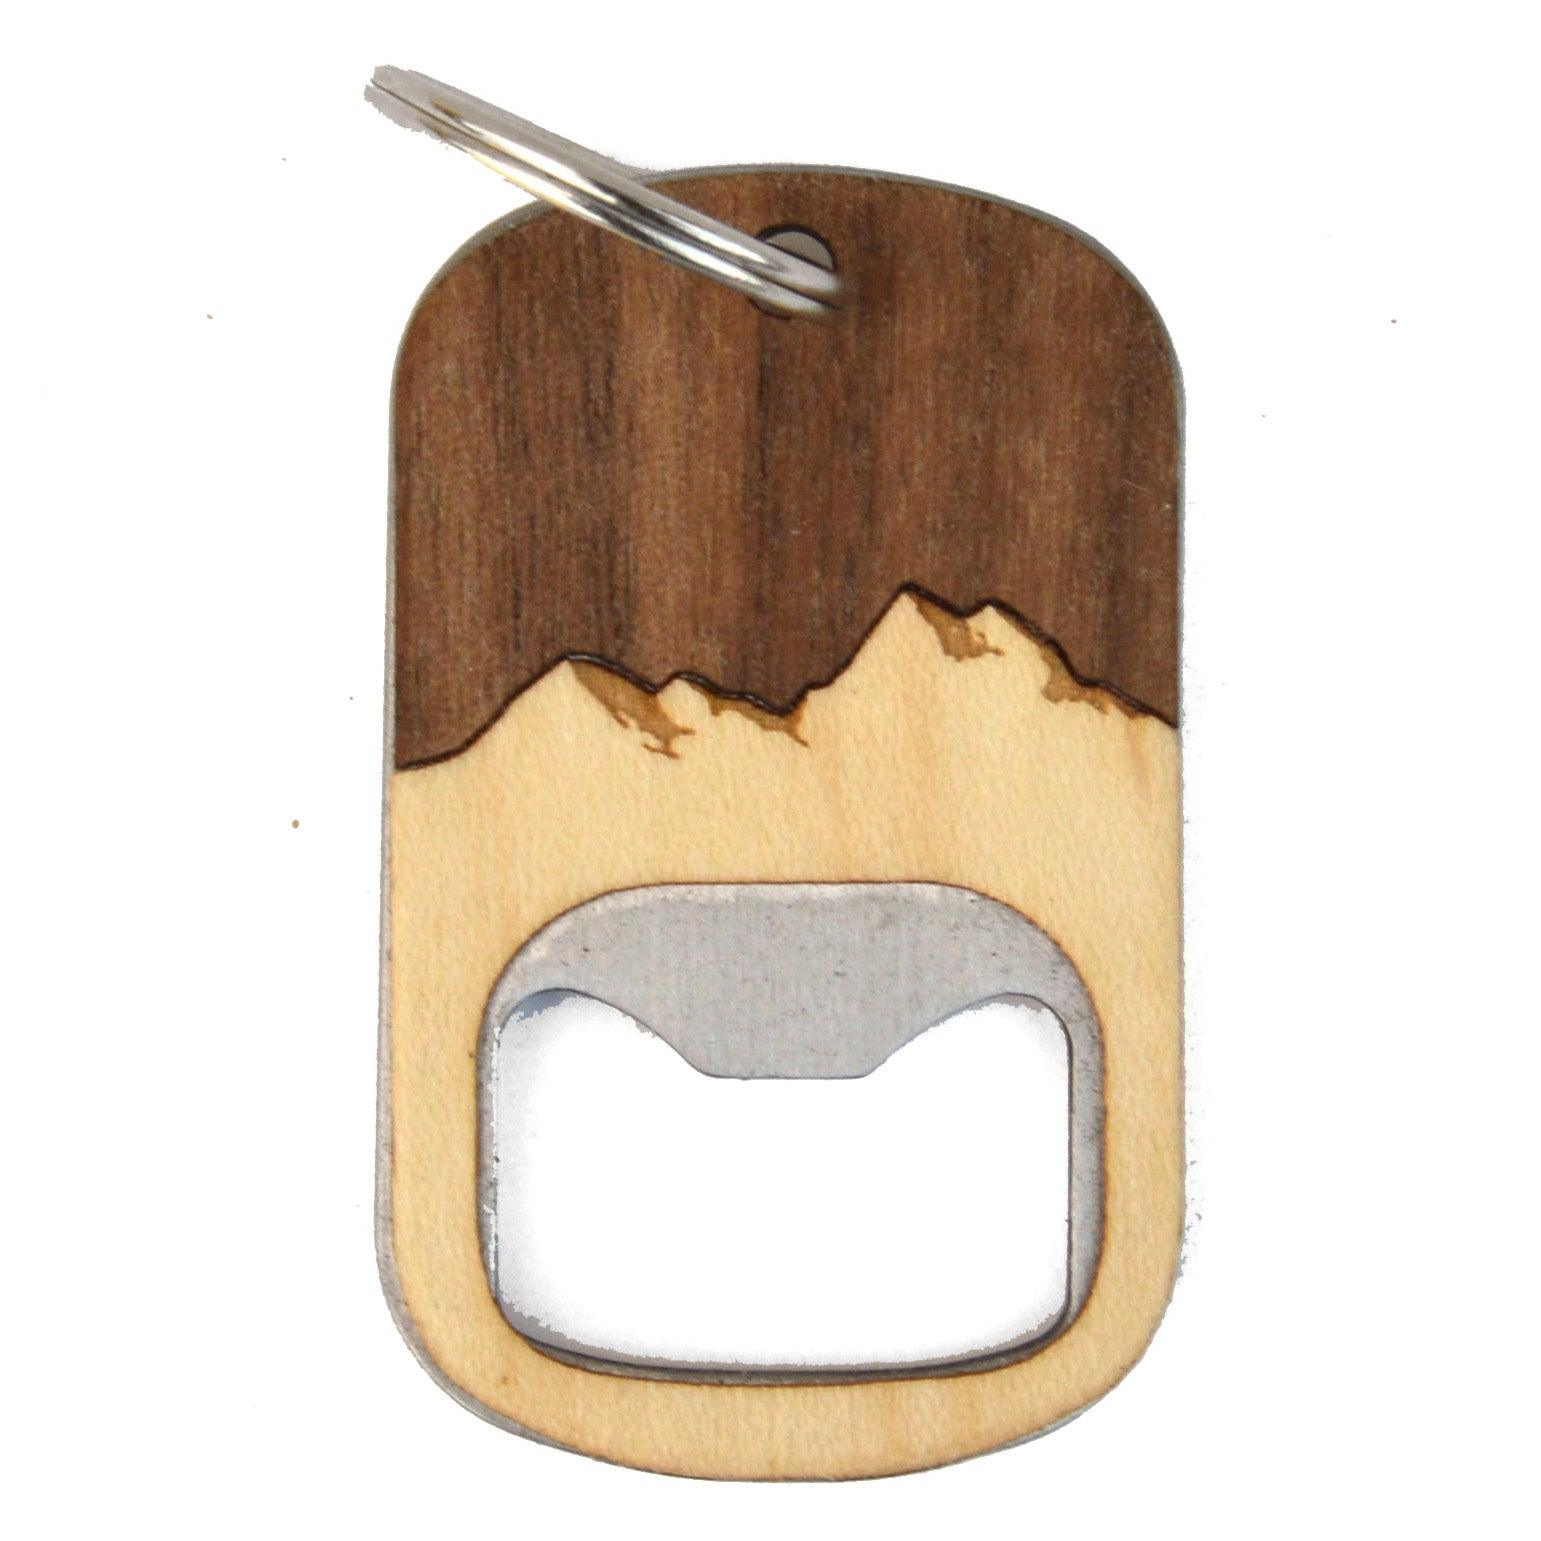 Mountain Keychain Opener - Autumn Woods Co.